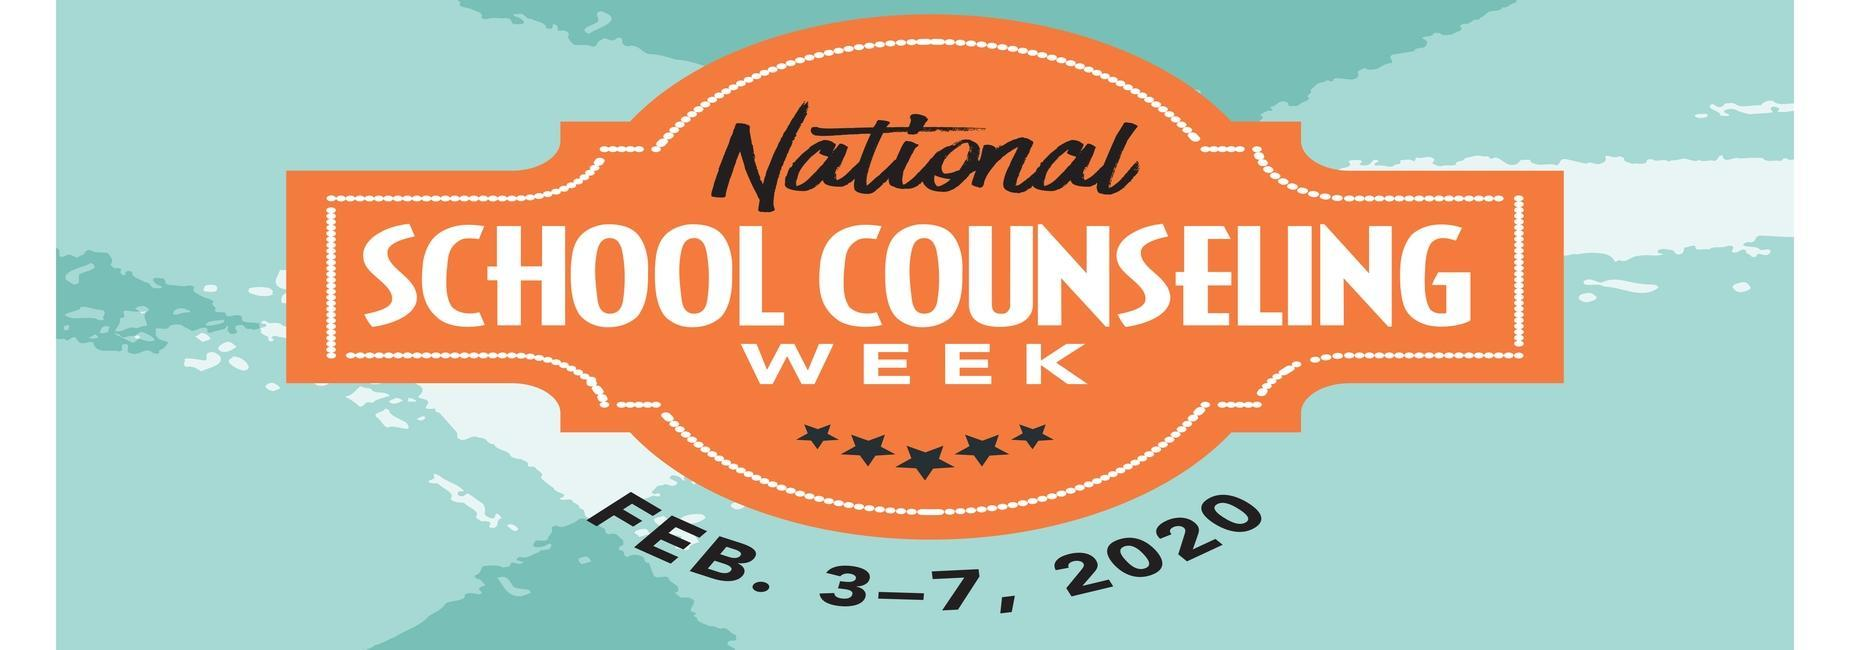 A graphic photo that says National School Counseling Week Feb 3-7, 2020